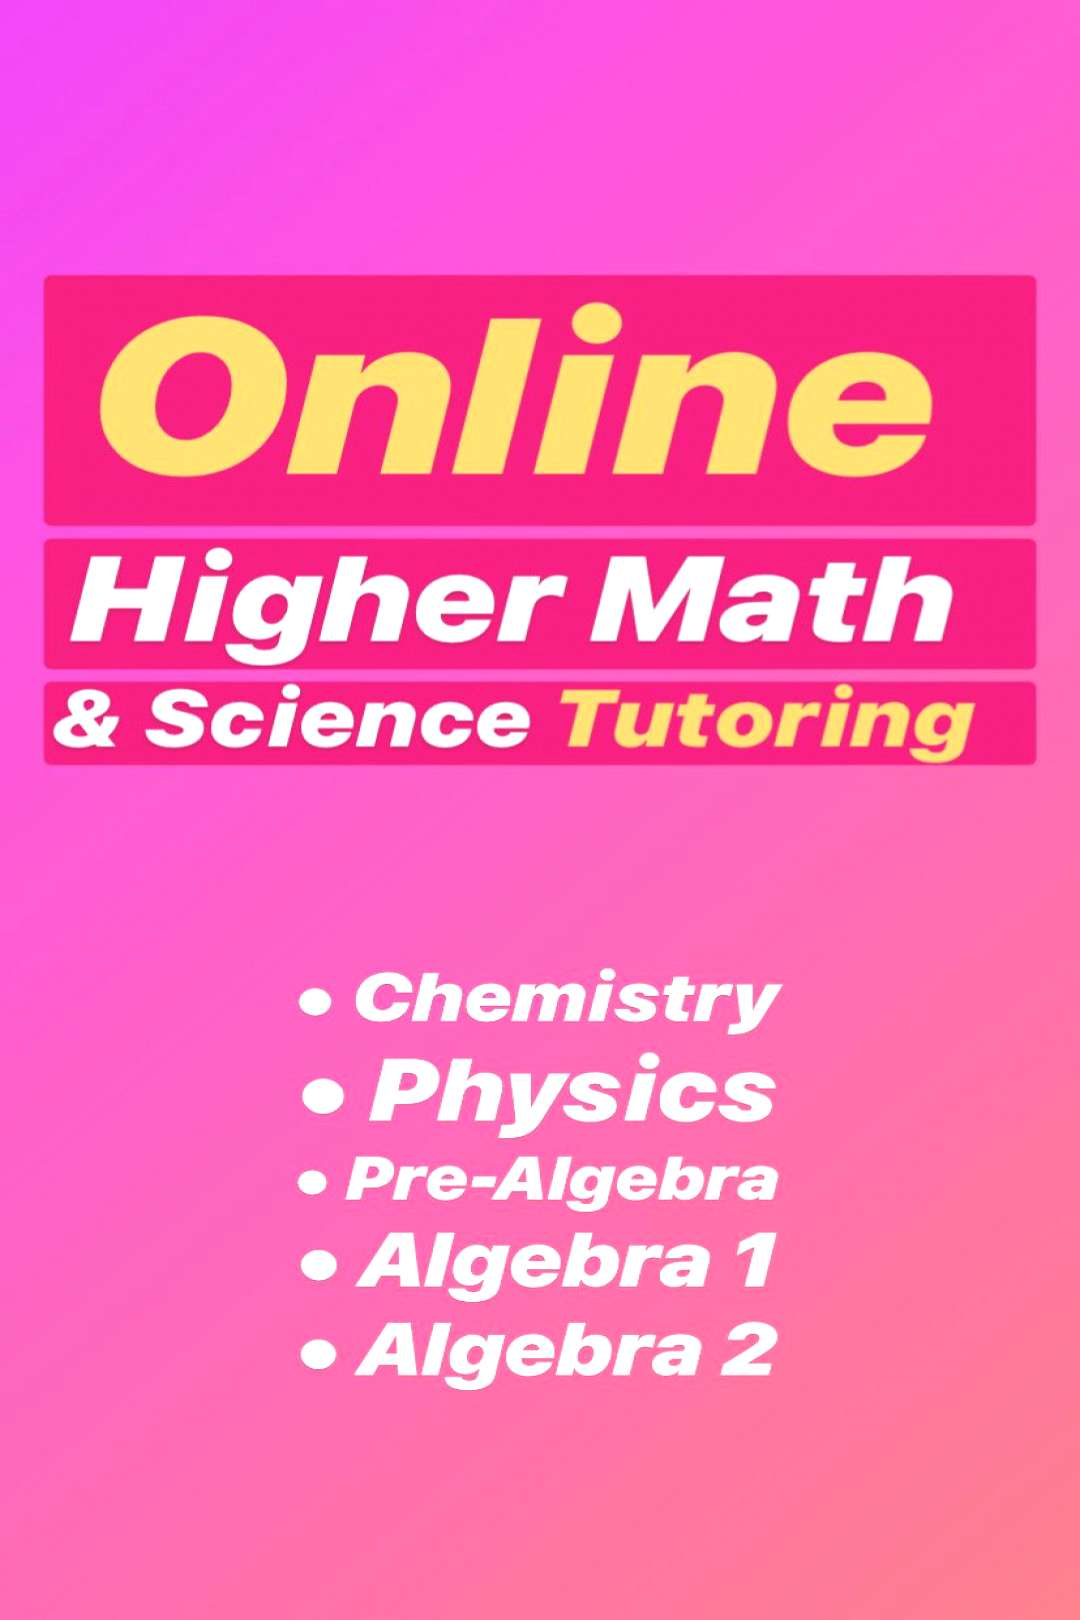 Activate Tutoring: Private Online Higher Math and Science Tutoring